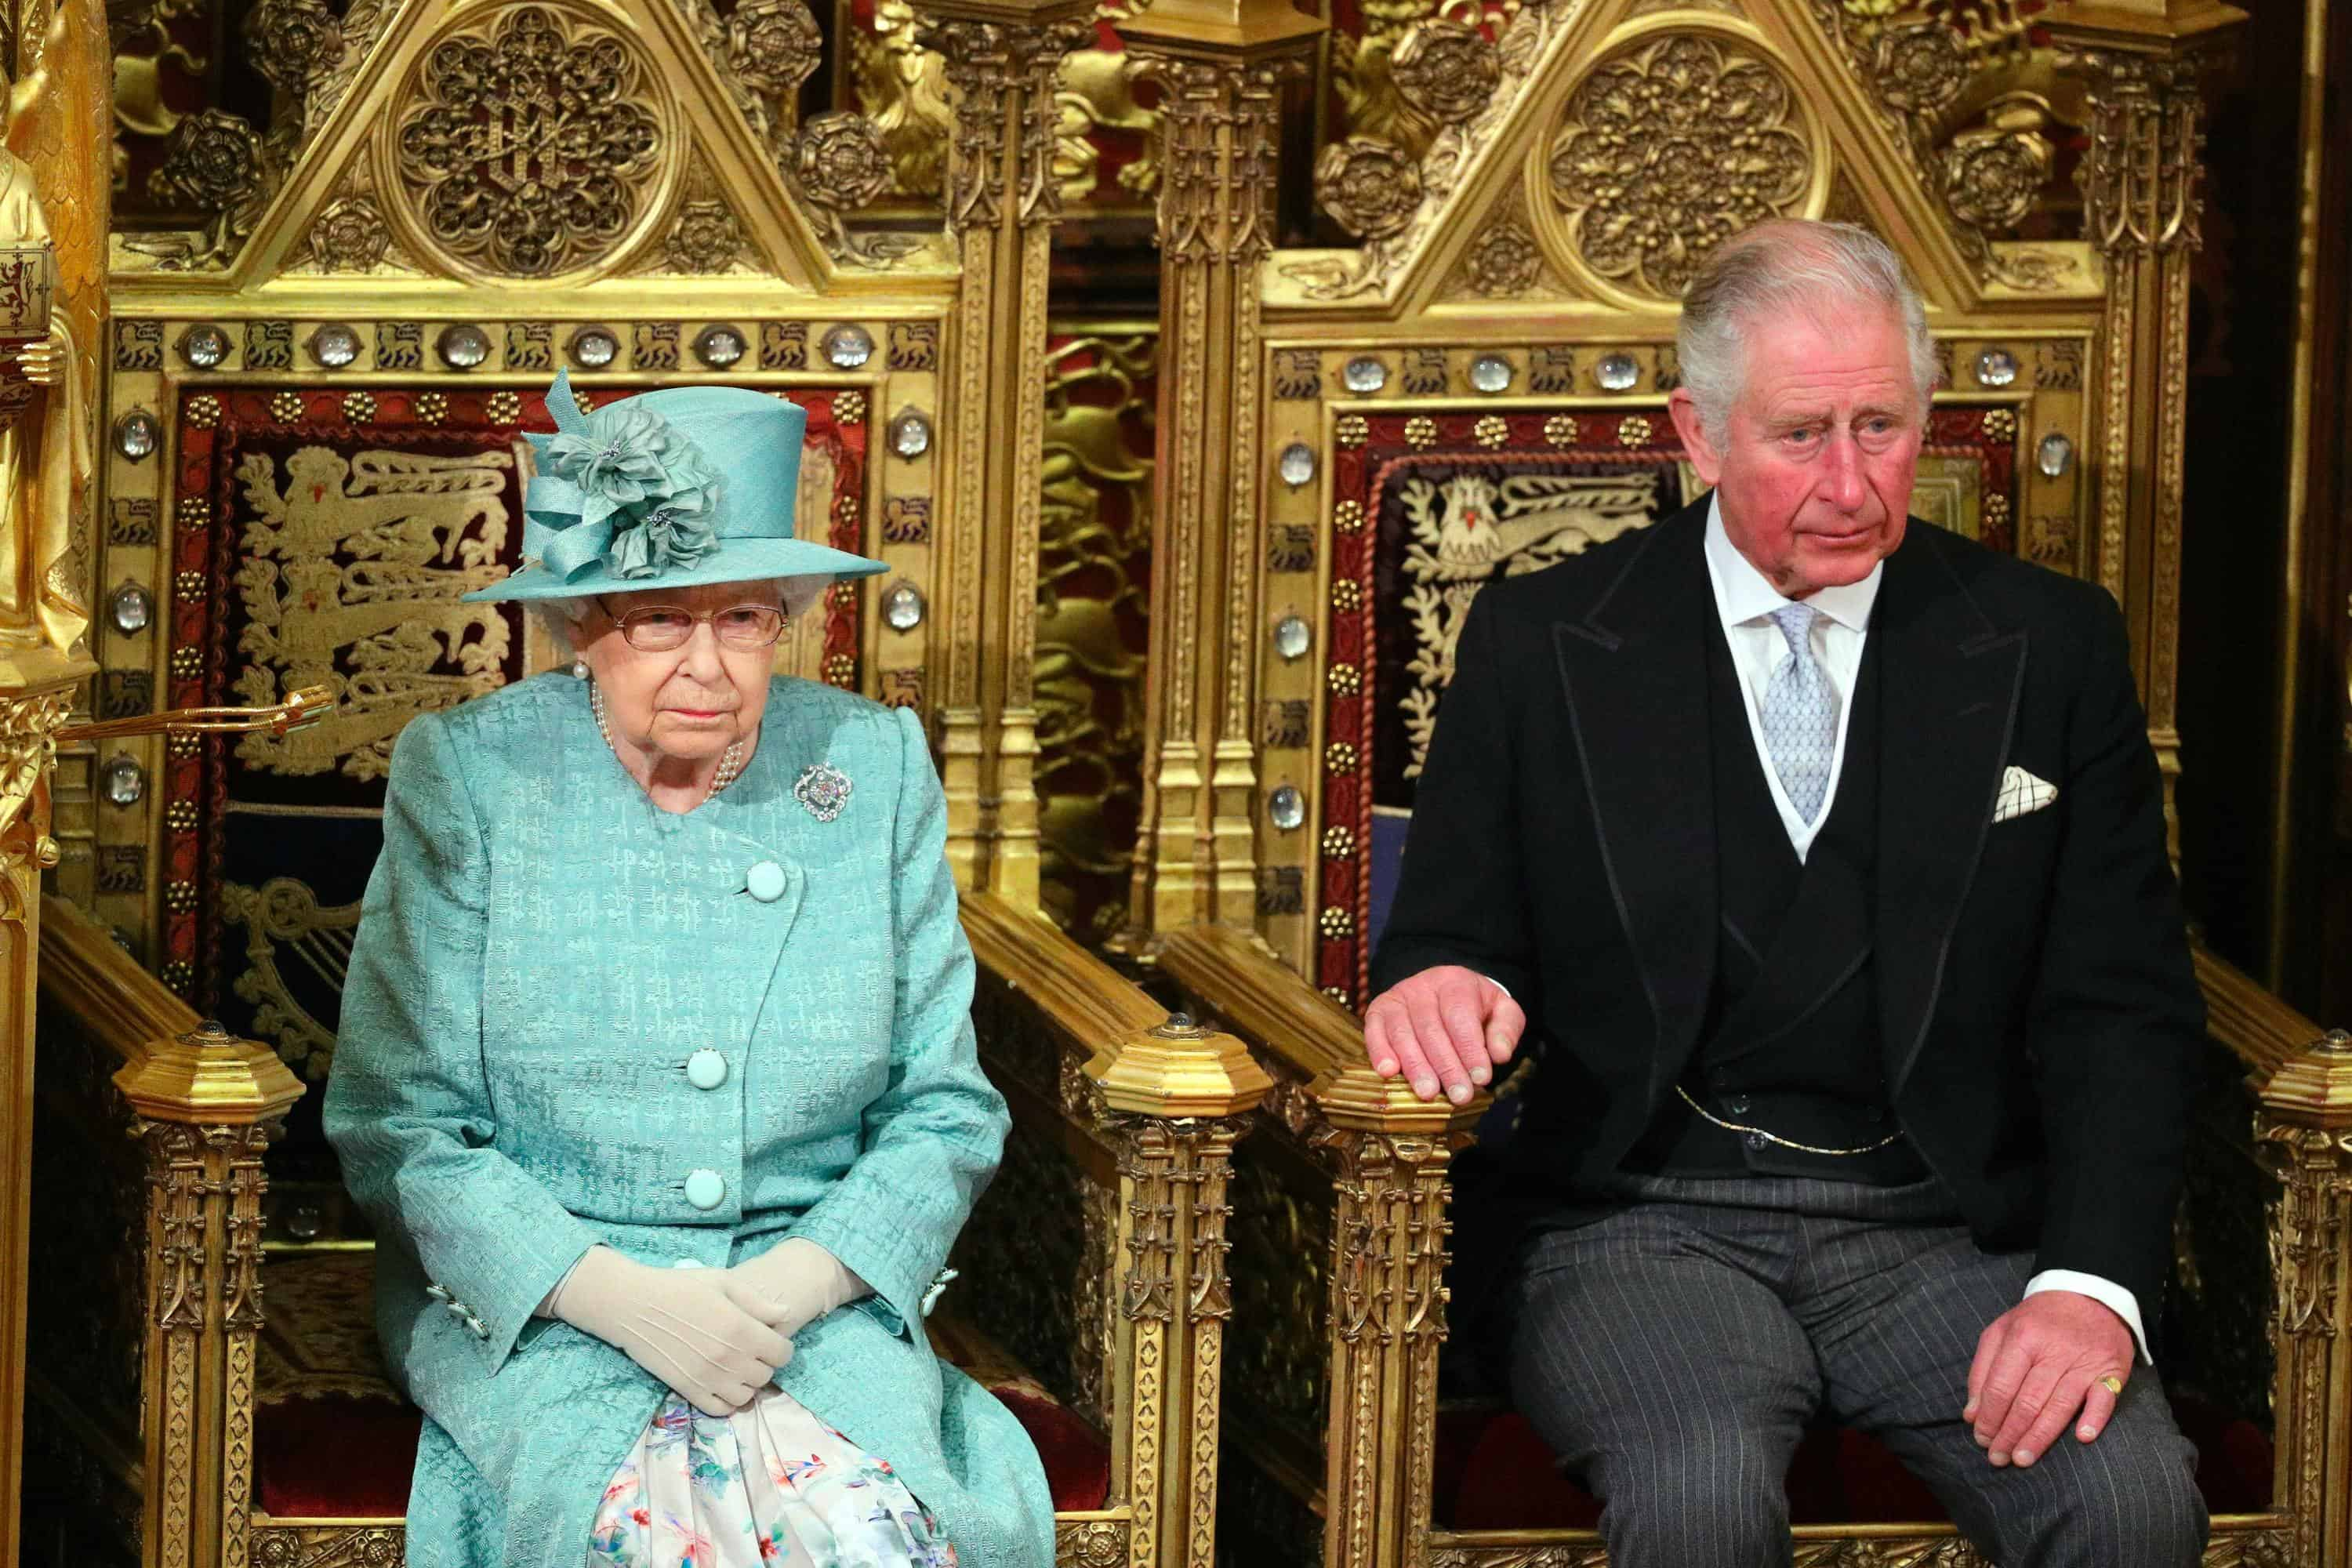 Queen Elizabeth II vows to finish European Union exit in speech to Parliament